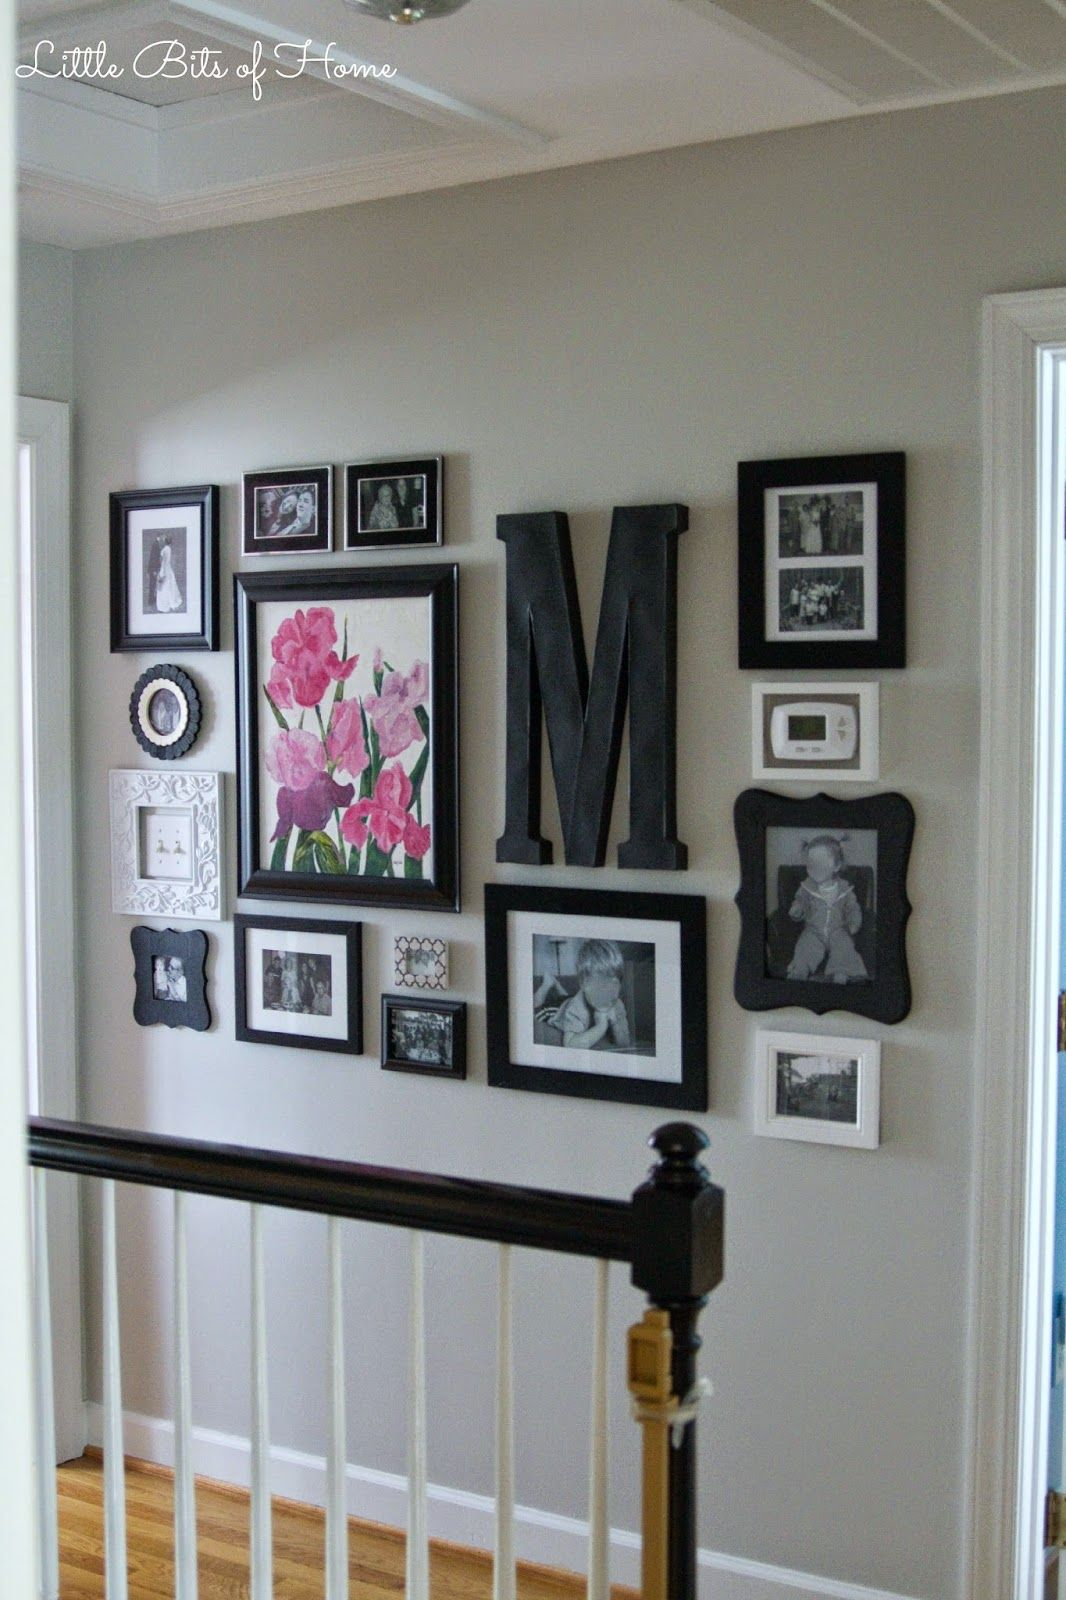 Little Bits of Home: Hall Gallery Wall